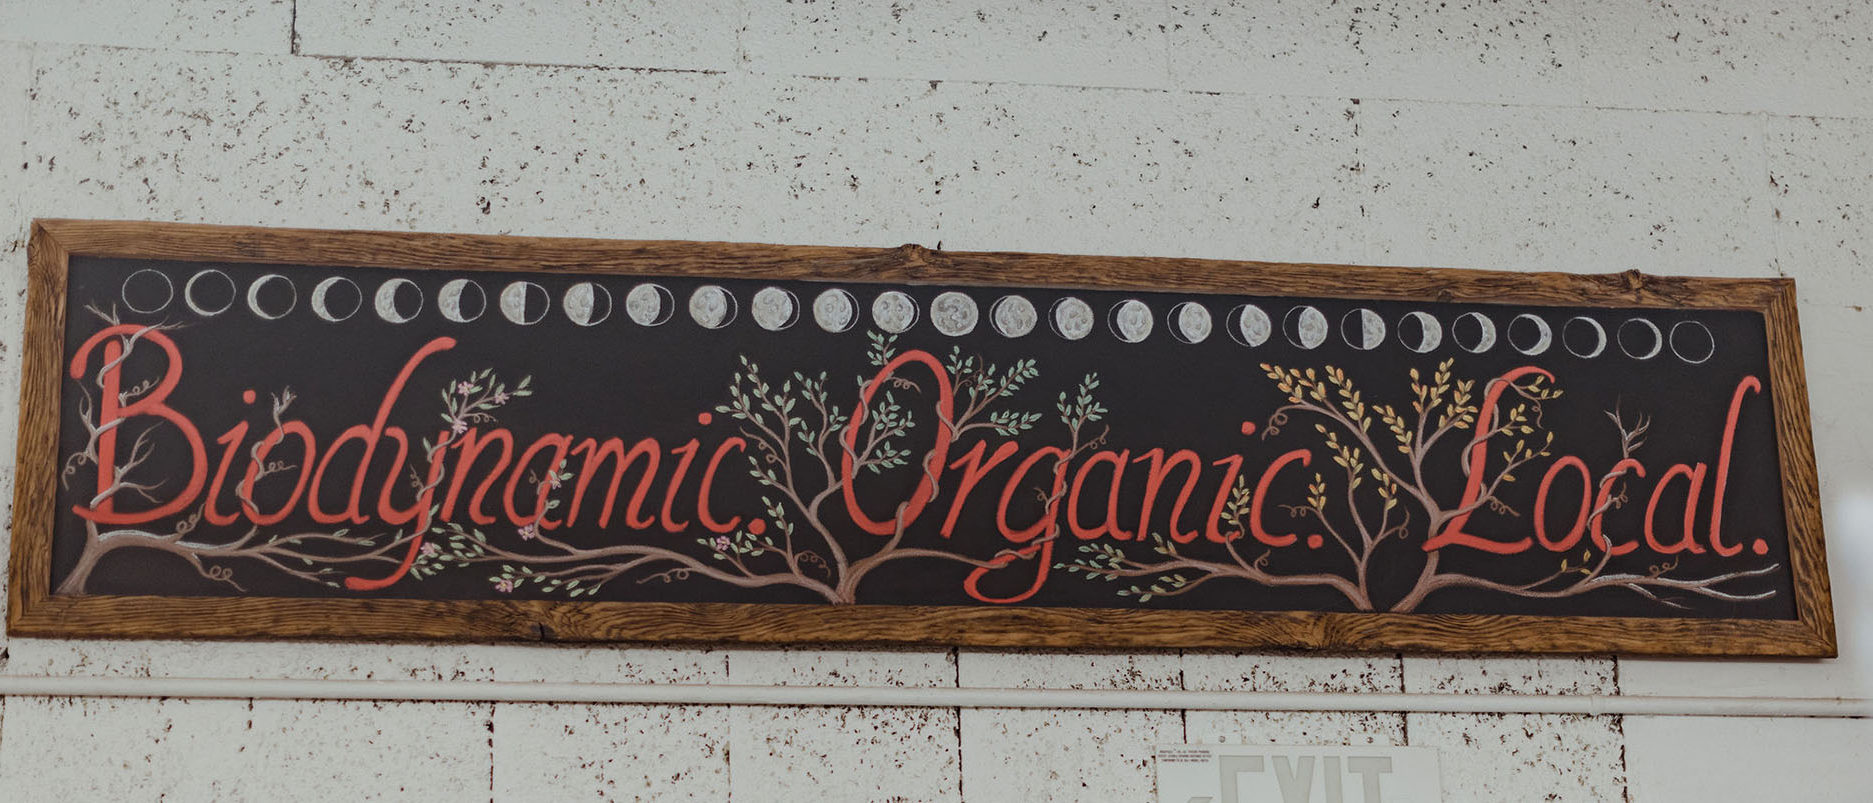 Biodynamic Organic Local chalkboard sign